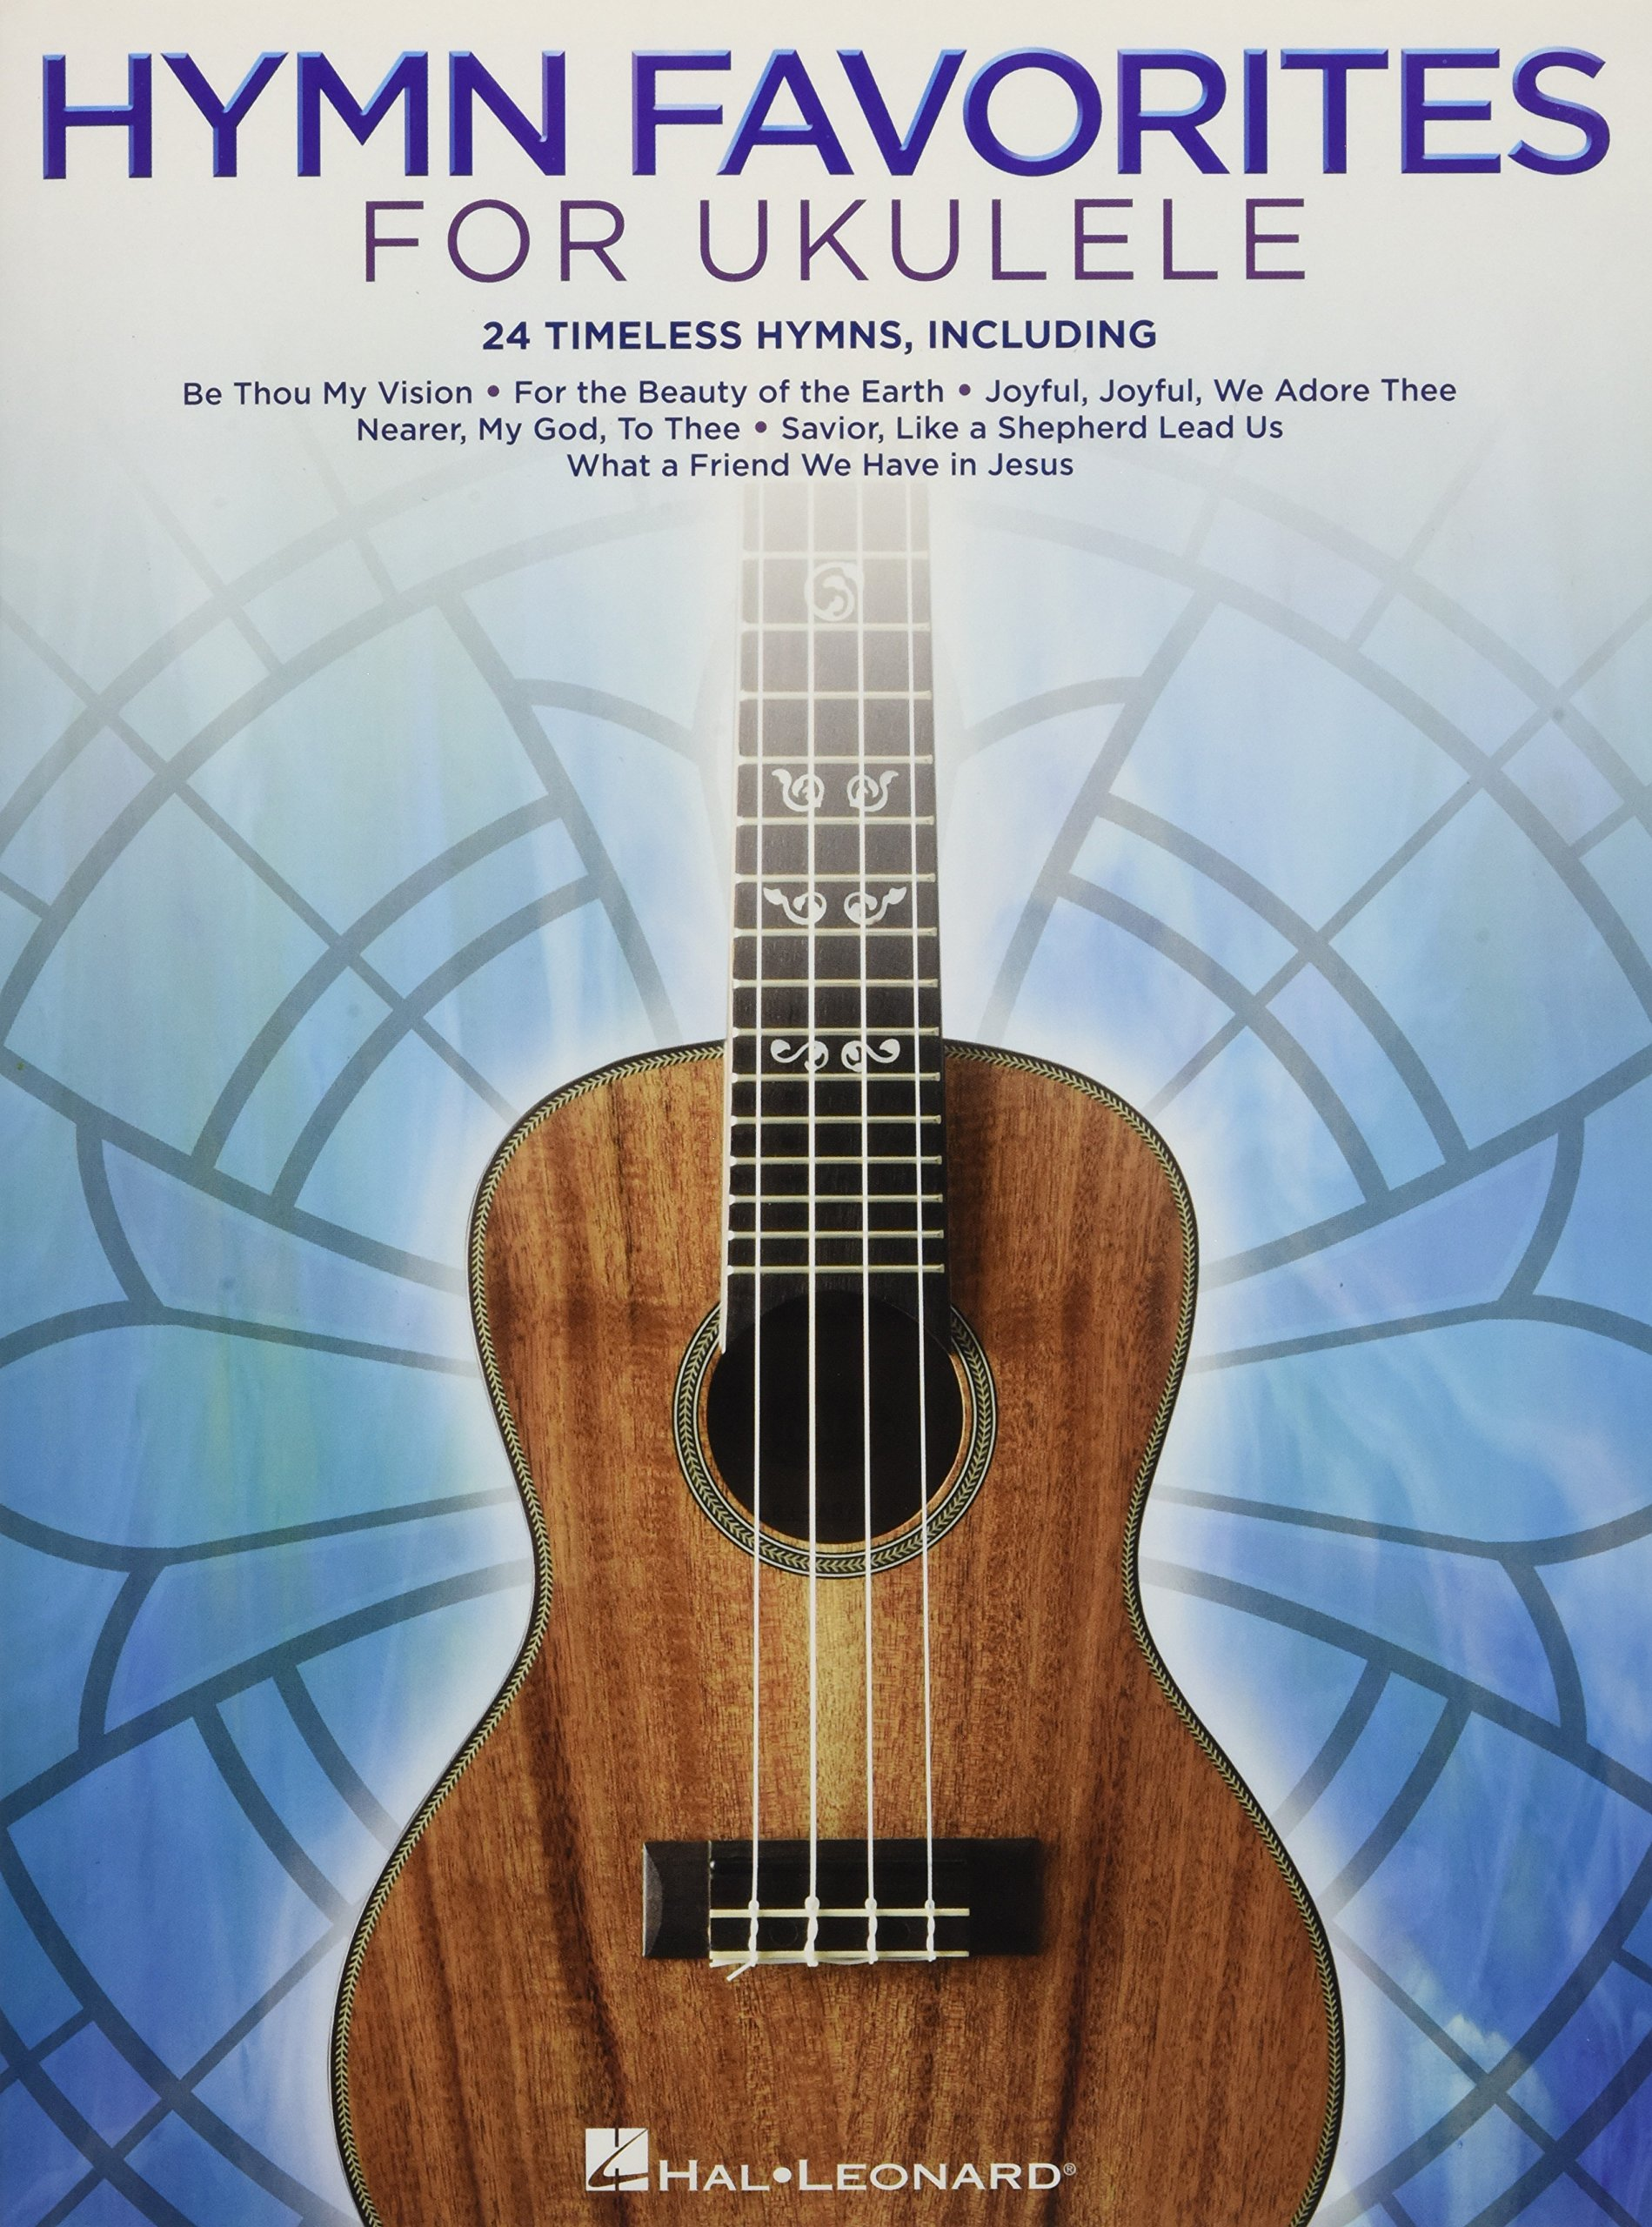 Hymn Favorites for Ukulele